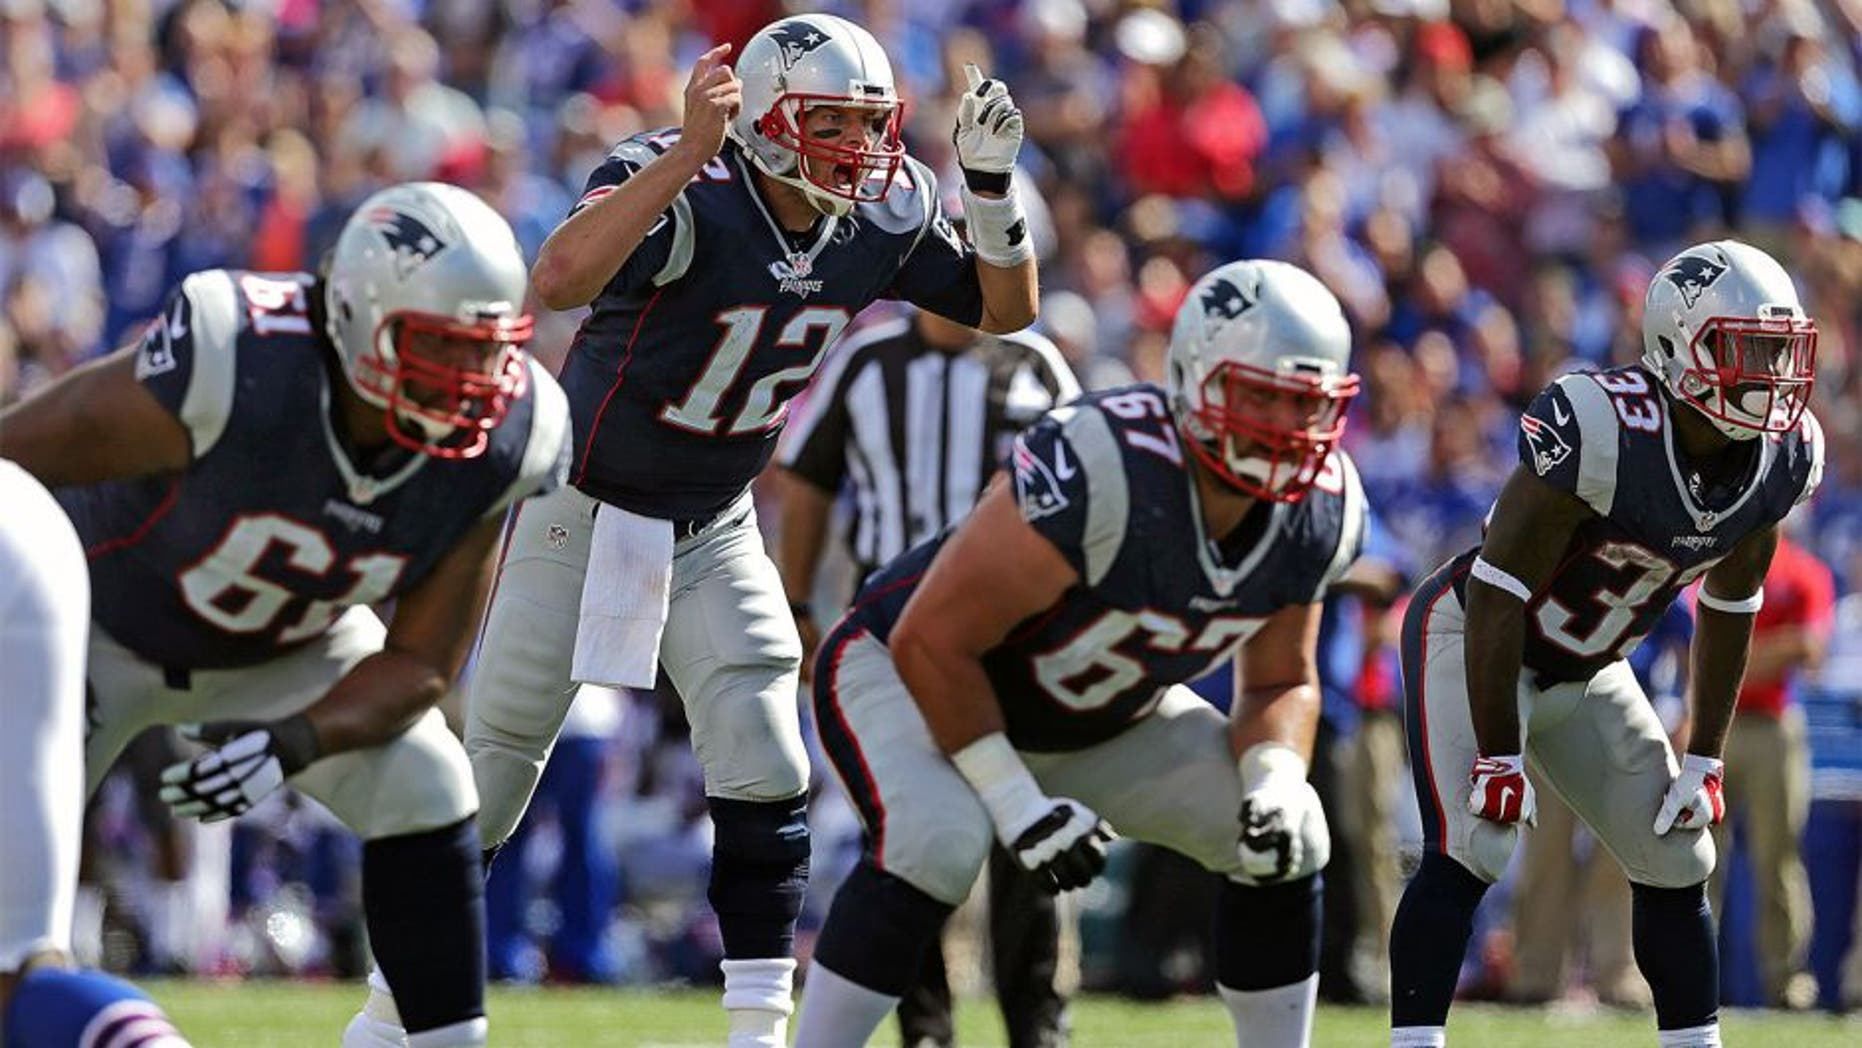 ORCHARD PARK, NY - SEPTEMBER 20: New England Patriots quarterback Tom Brady (#12) shouts out a play to his Offensive Line which kept him well protected against the vaunted Buffalo Bills defense. The New England Patriots take on the Buffalo Bills at Ralph Wilson Stadium in Orchard Park, New York, Sept. 20, 2015. (Photo by Barry Chin/The Boston Globe via Getty Images)